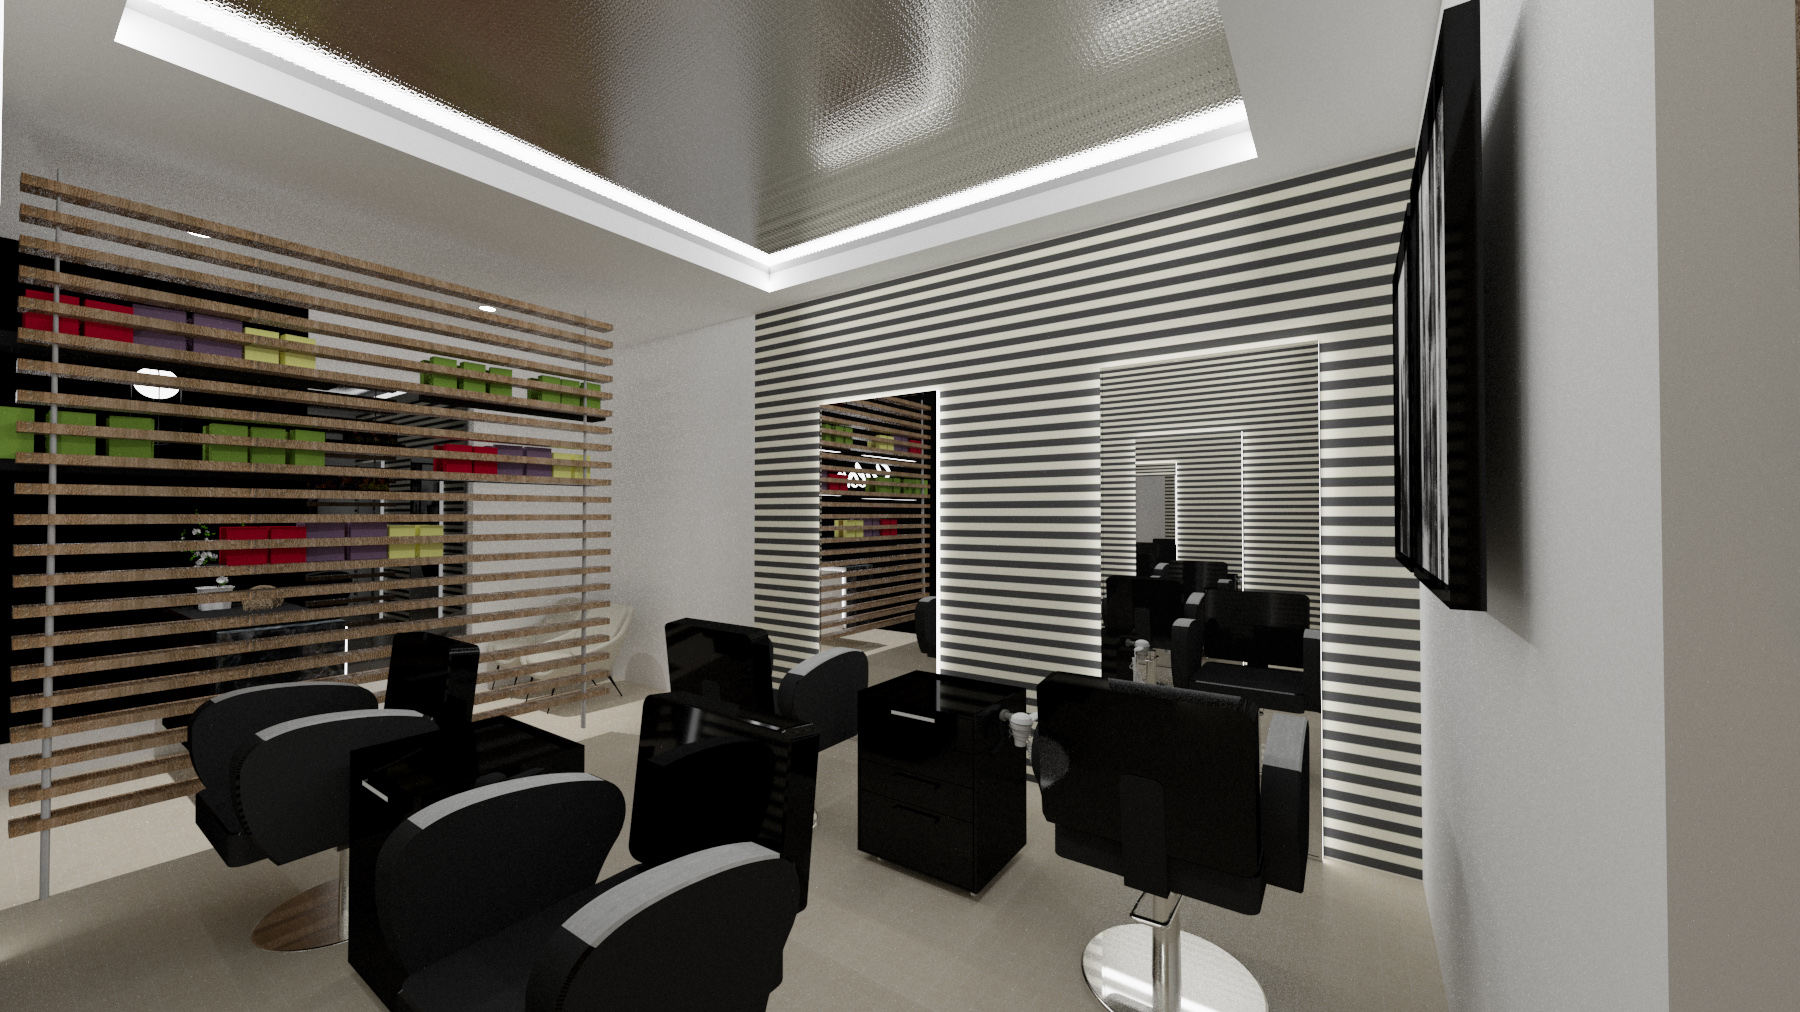 View of hairdresser2